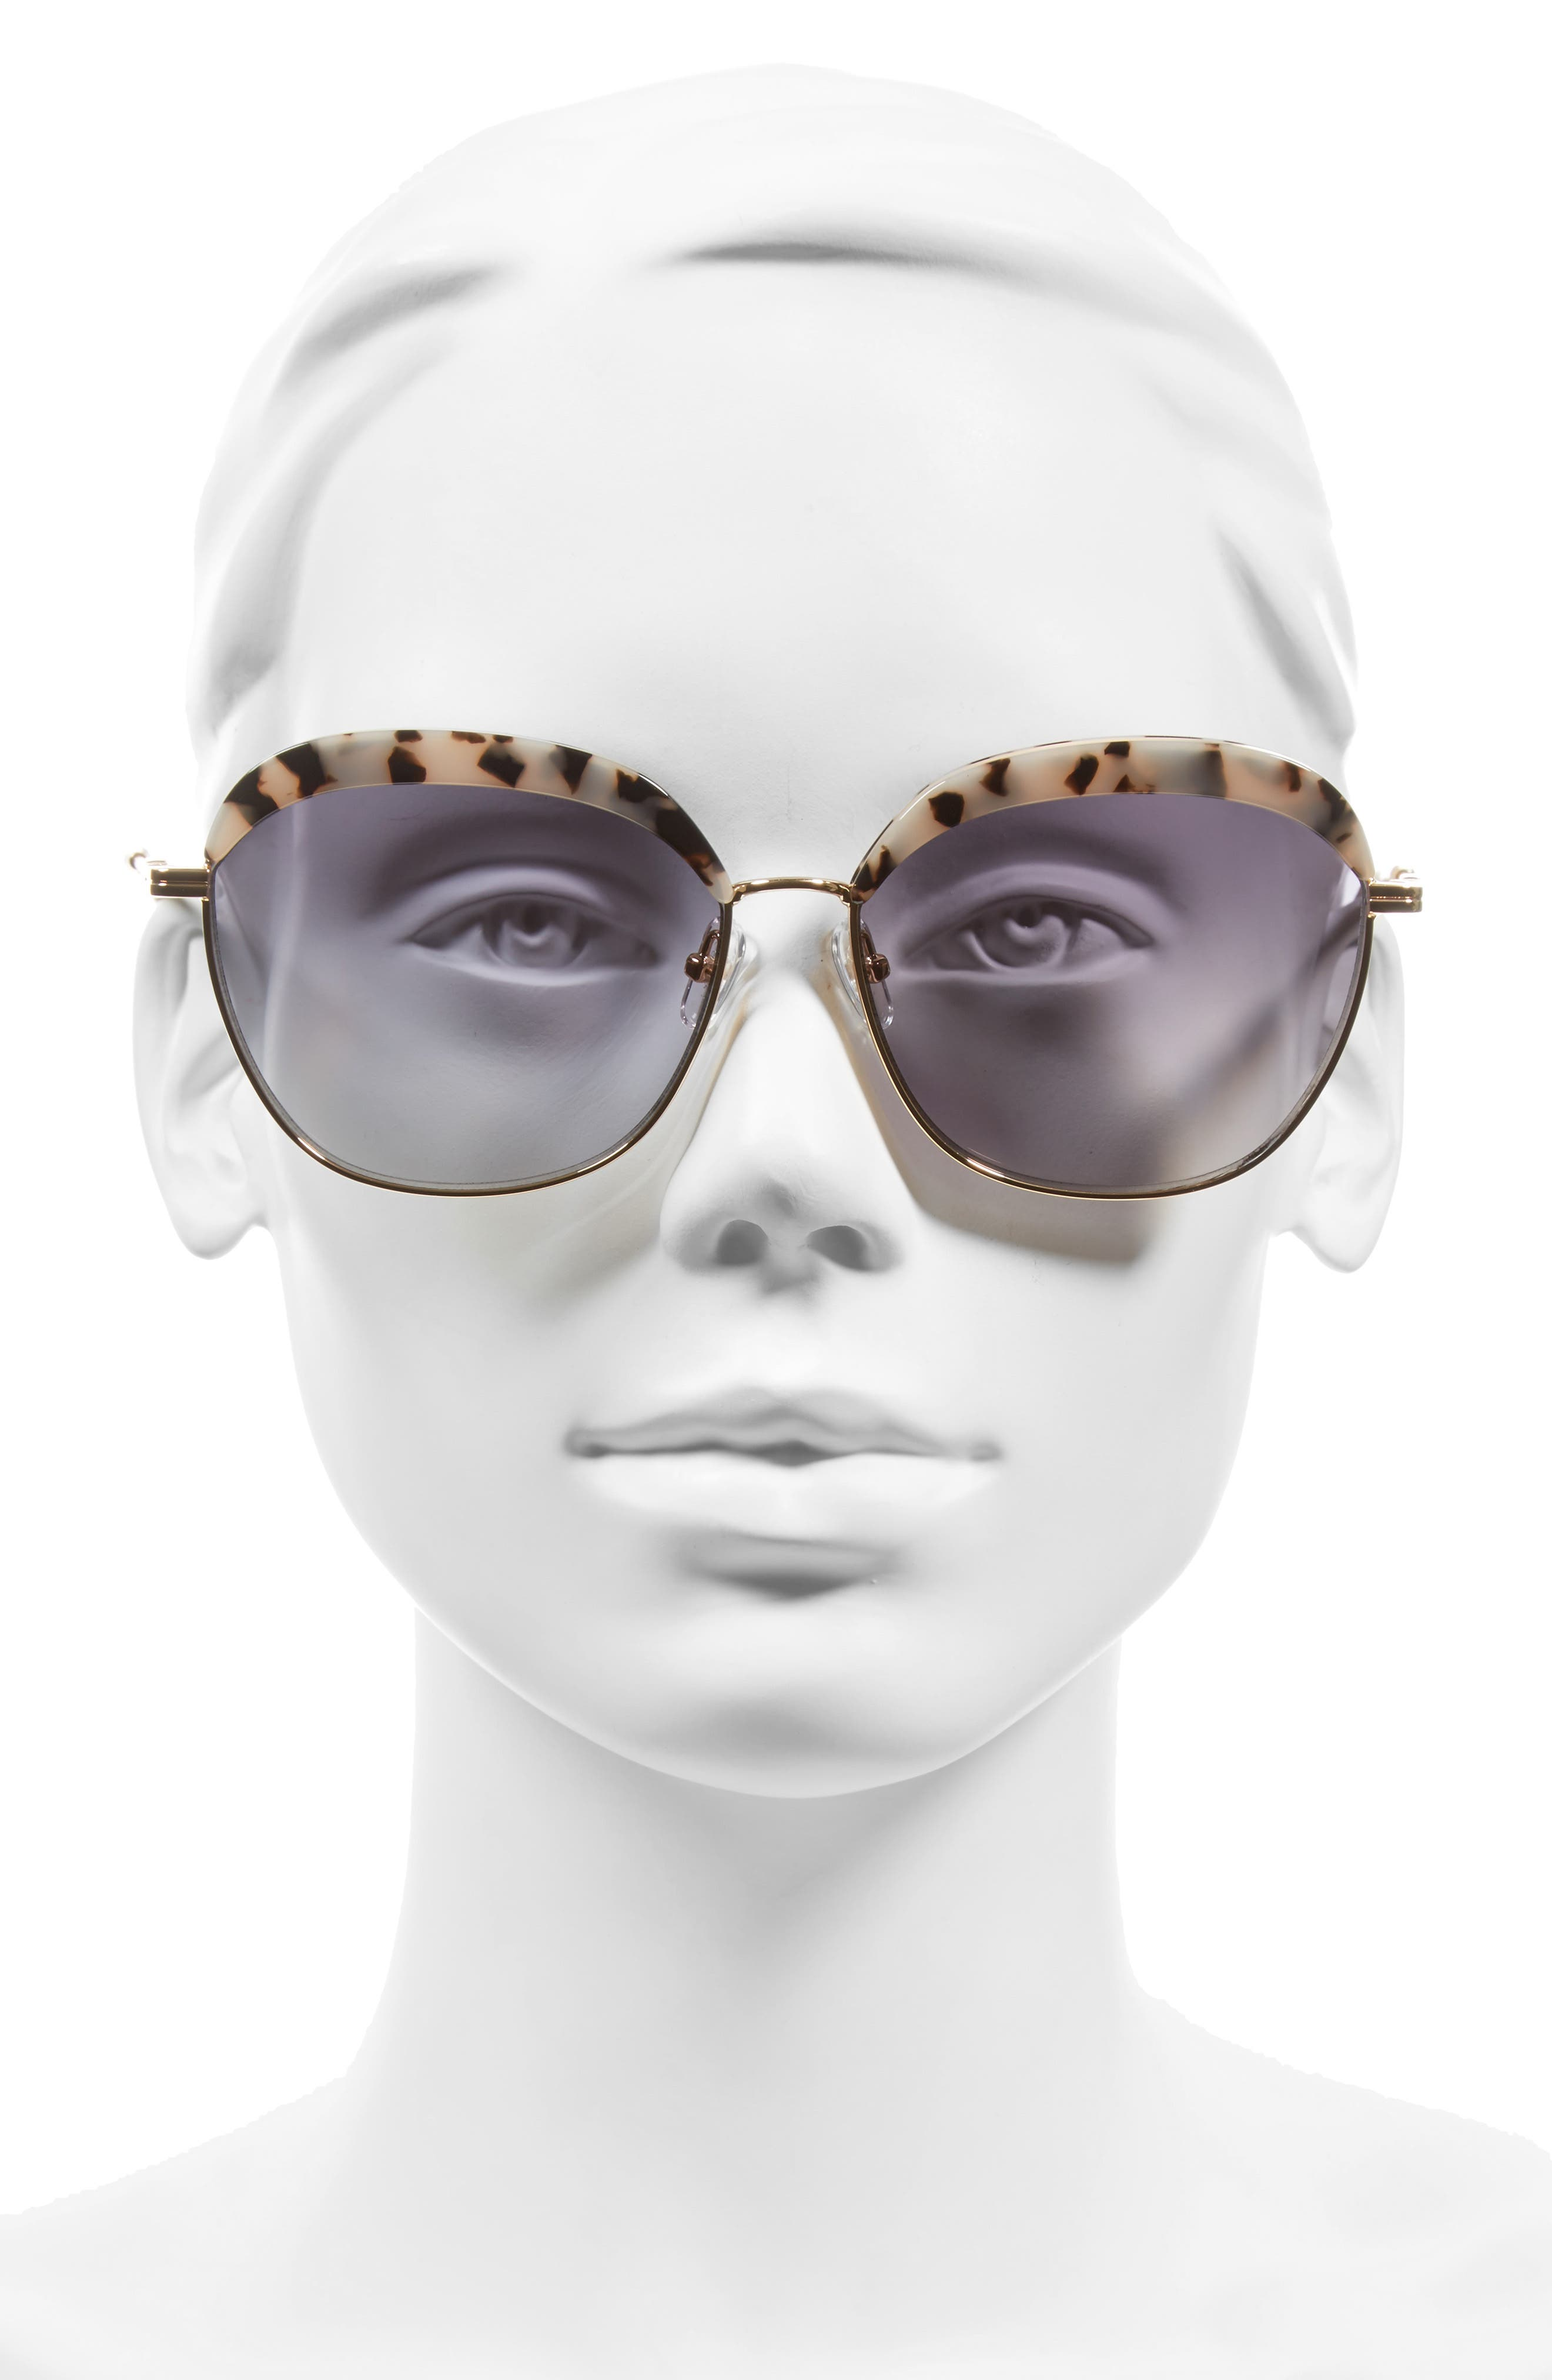 Birdie 60mm Oversize Sunglasses,                             Alternate thumbnail 2, color,                             200